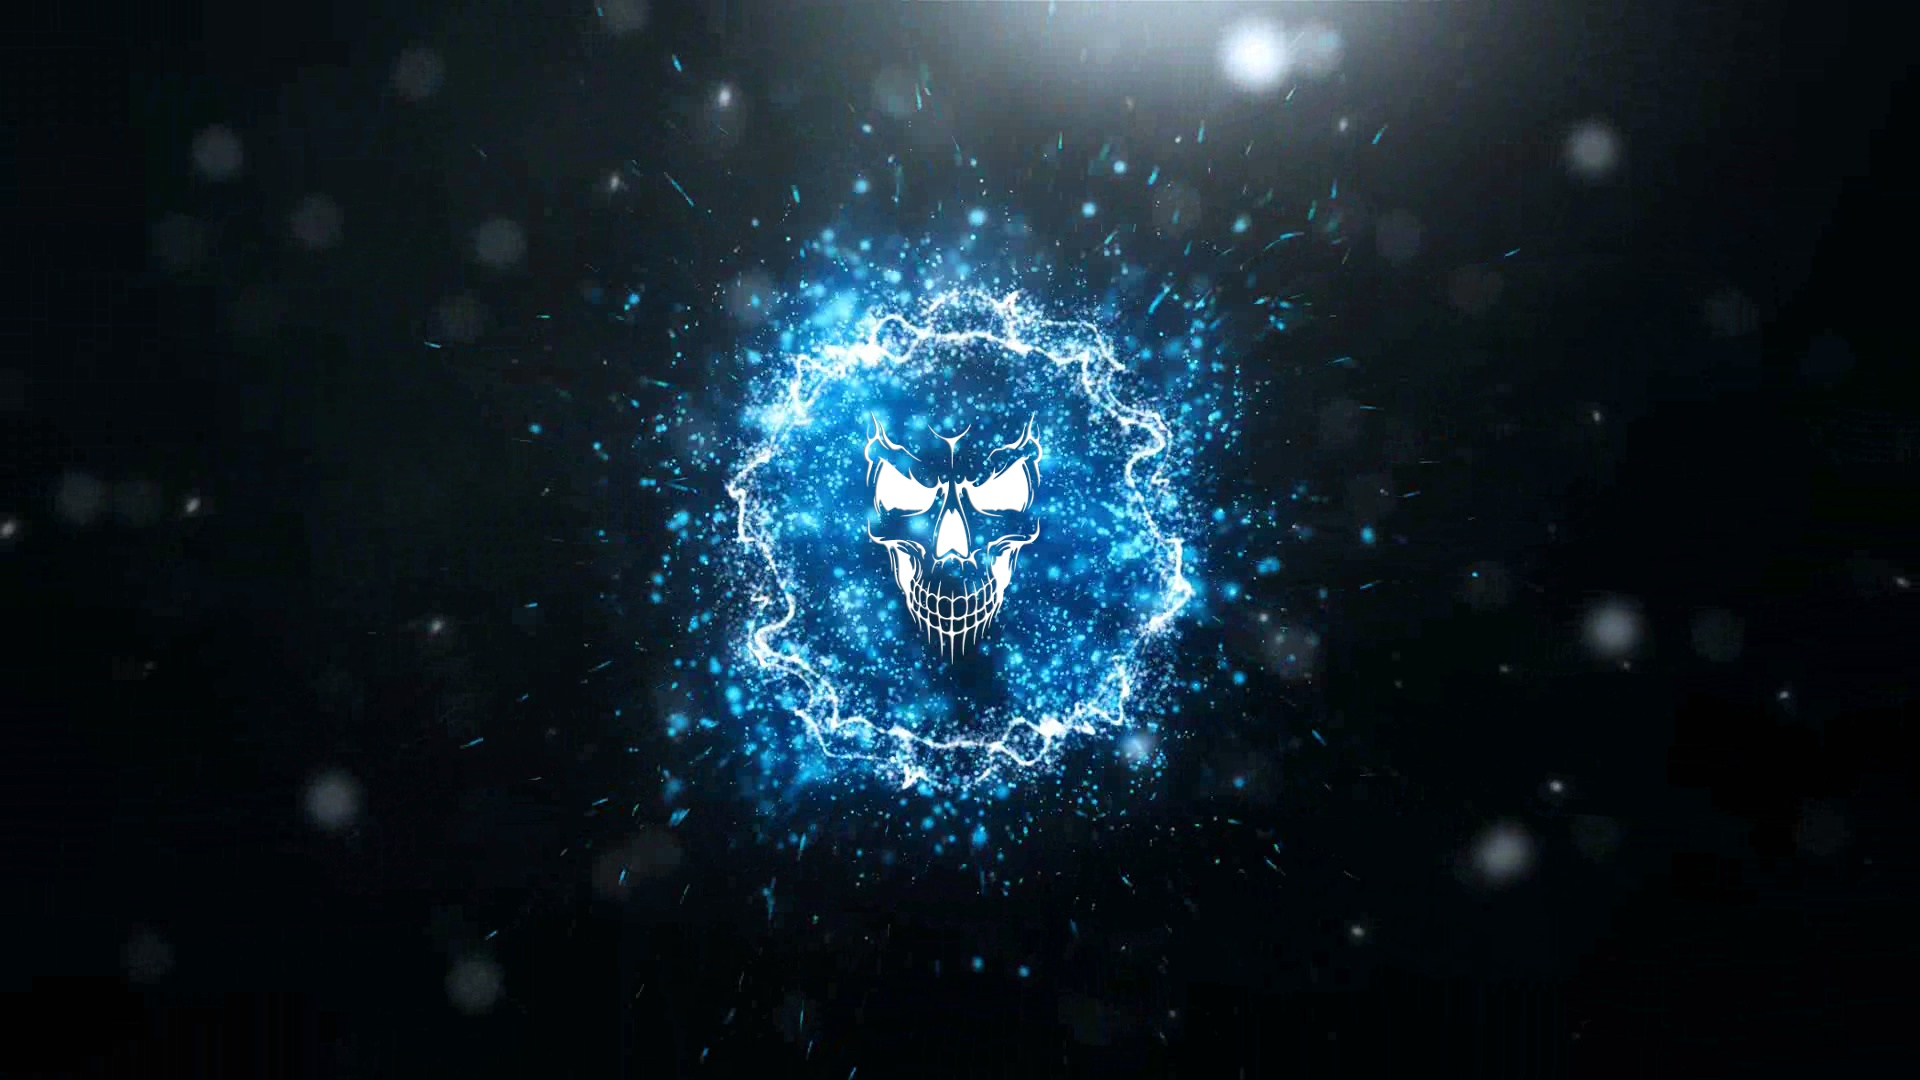 sony vegas pro 9 templates free download - skull logo intro template 124 sony vegas pro rkmfx